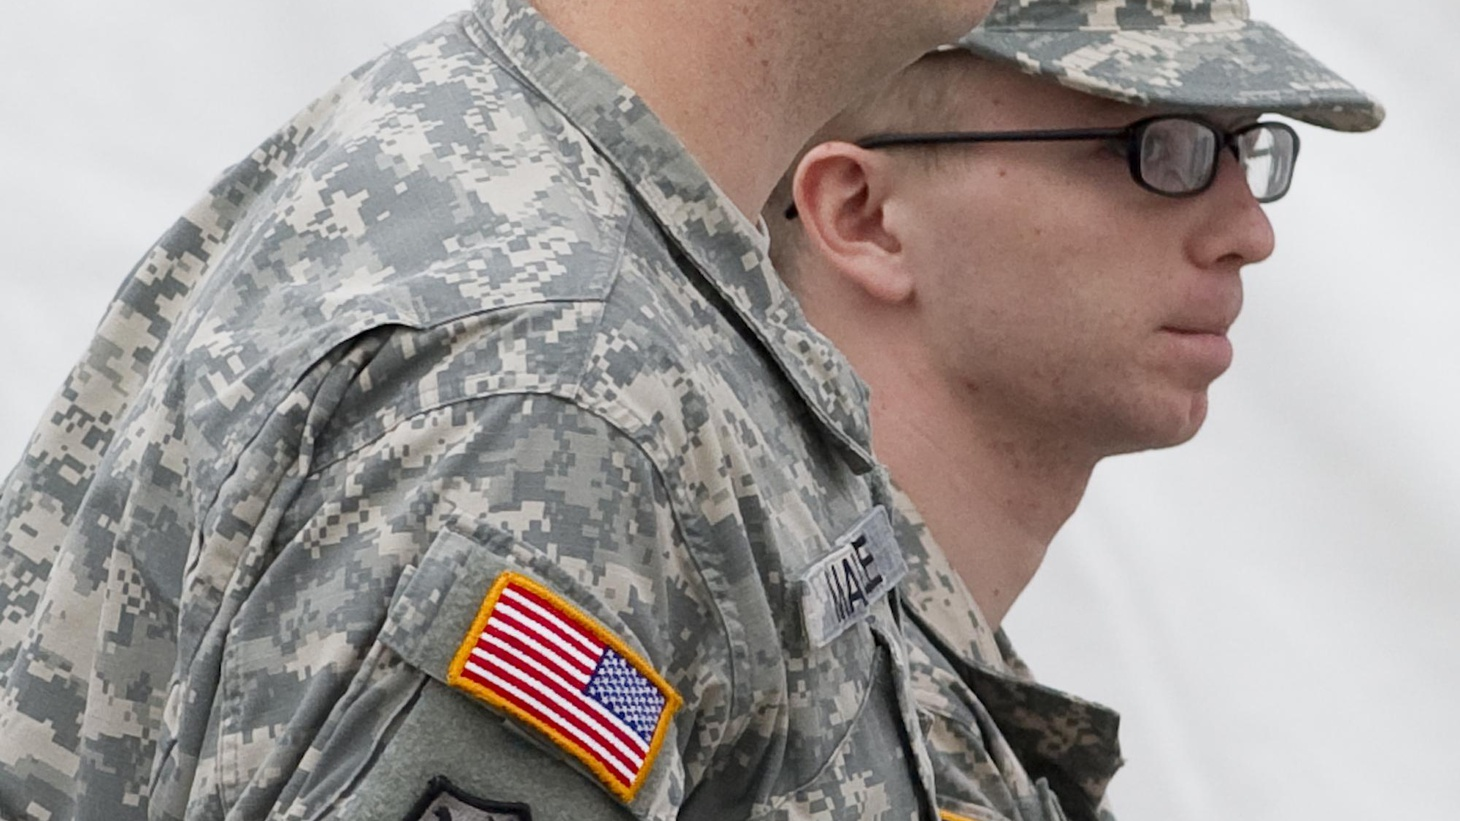 Pfc. Bradley Manning may get life in prison for releasing almost three-quarters-of-a-million classified documents.  Today we'll hear about Manning's pre-trial, WikiLeaks and the classification of information that poses no risk to national security.